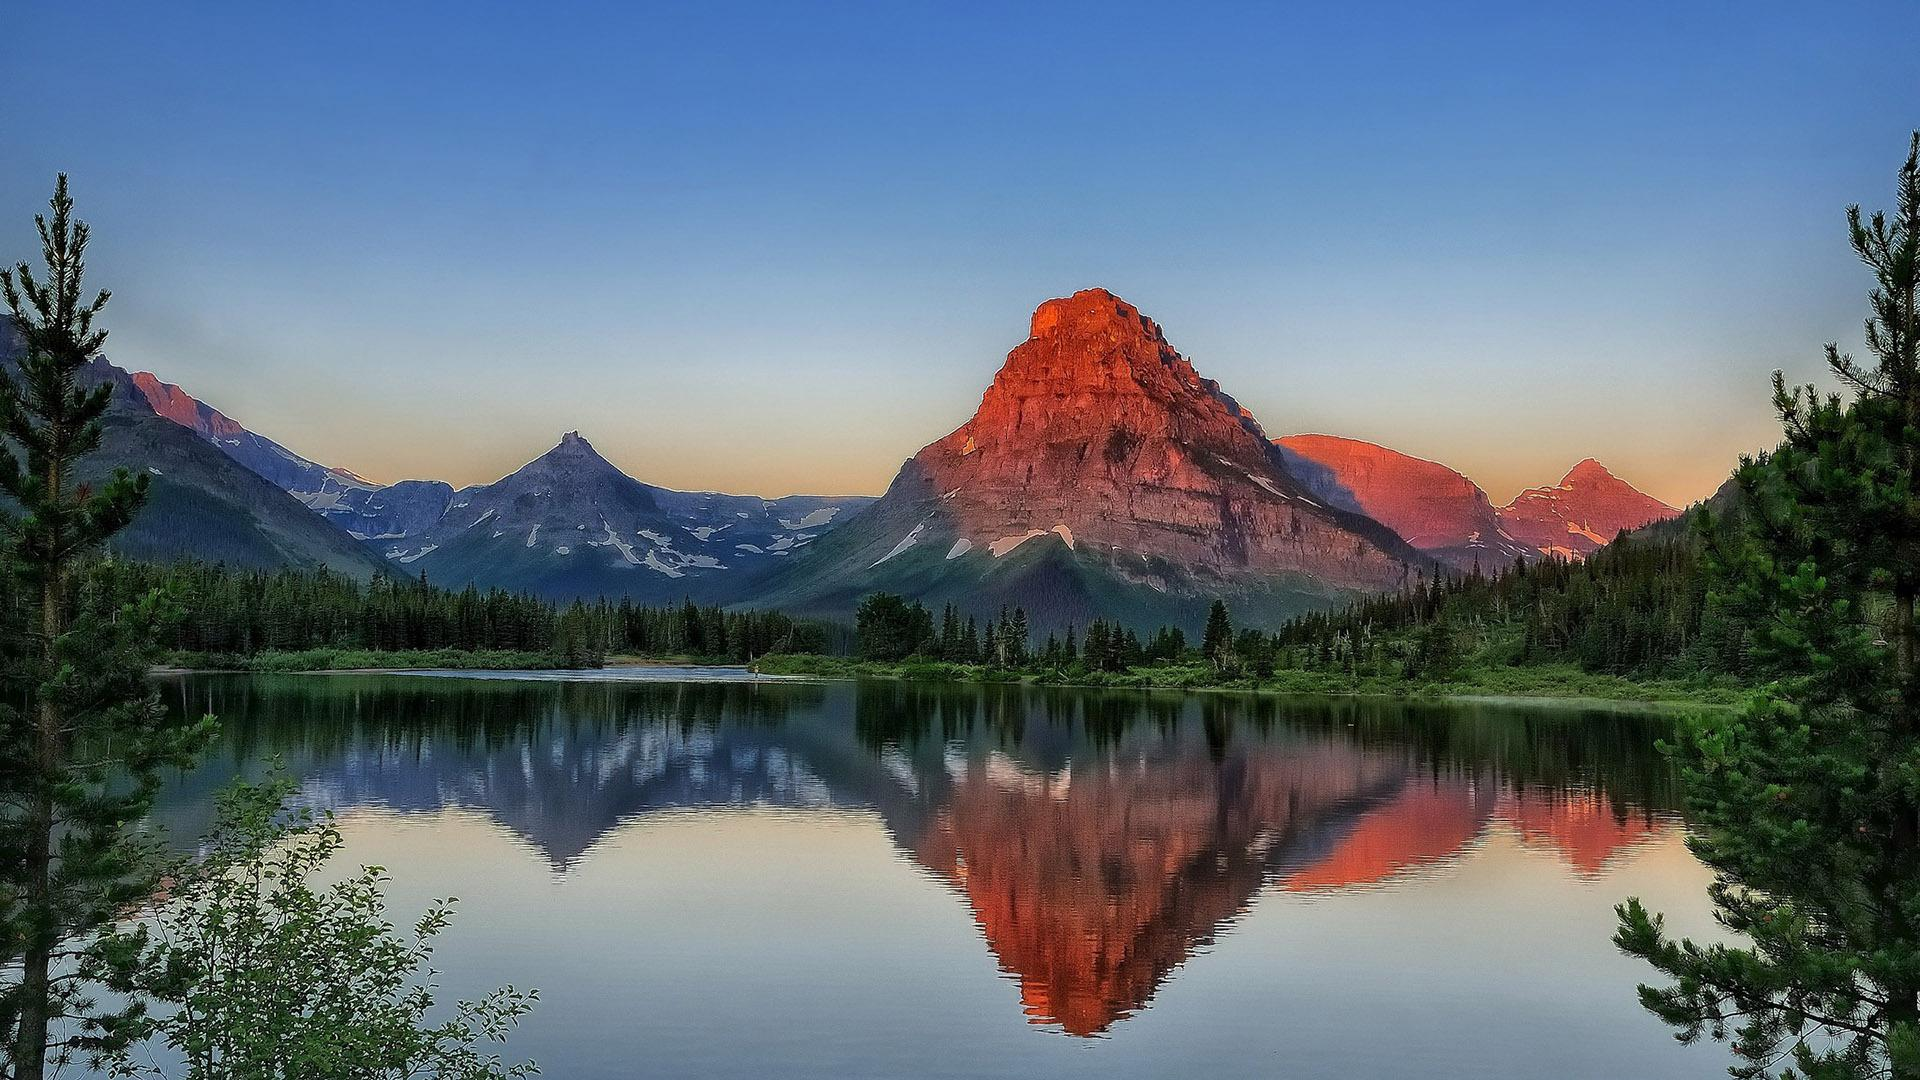 Cute Baby Blue Wallpapers Hd Copper Mountain Reflection In The Lake Wallpaper